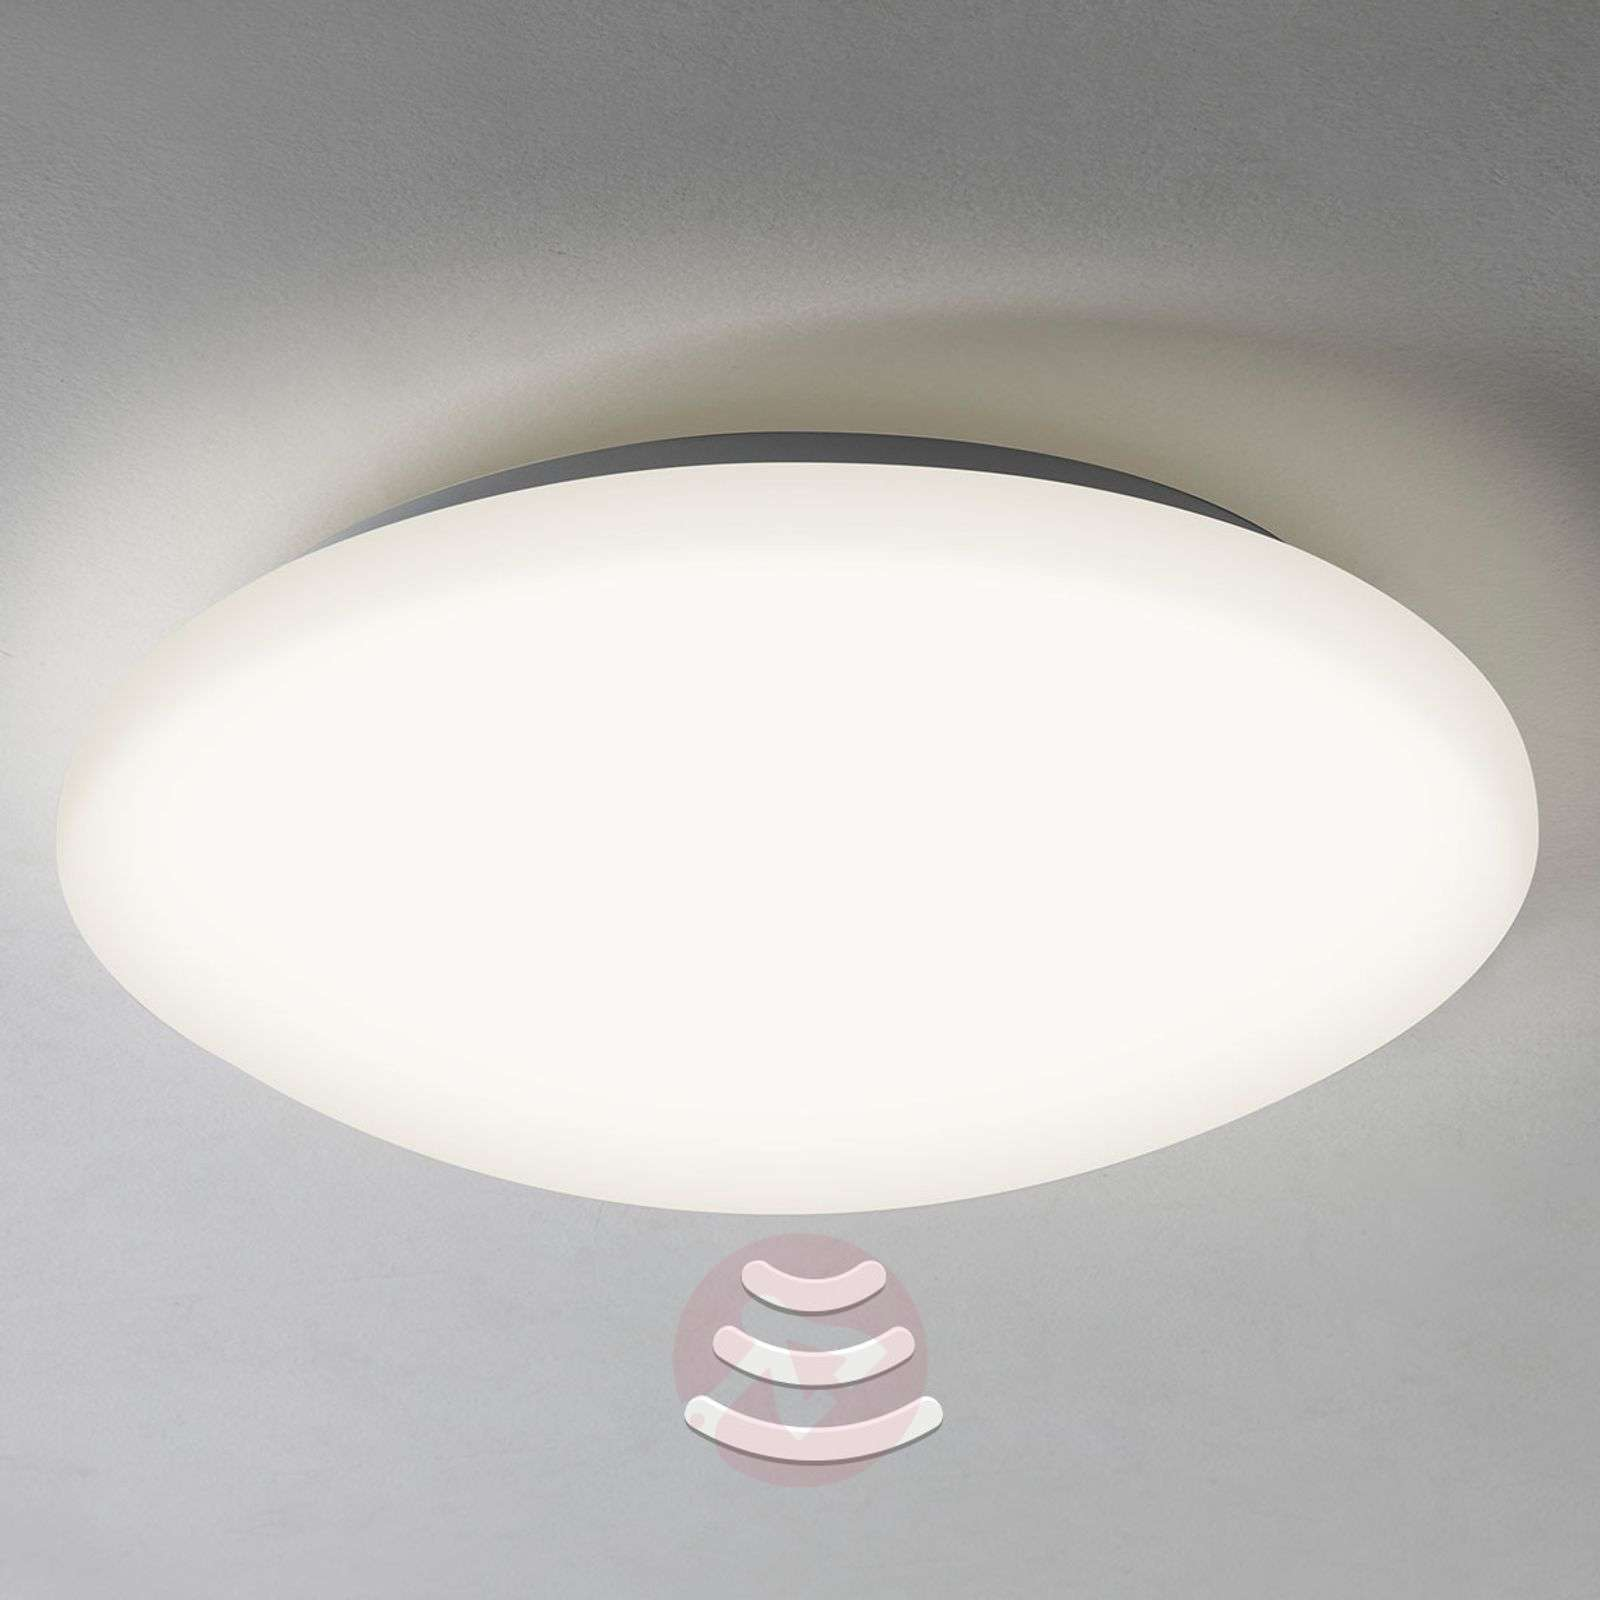 Plafoniera Con Sensore Incorporato : Acquista massa plafoniera led con sensore ip44 lampade.it